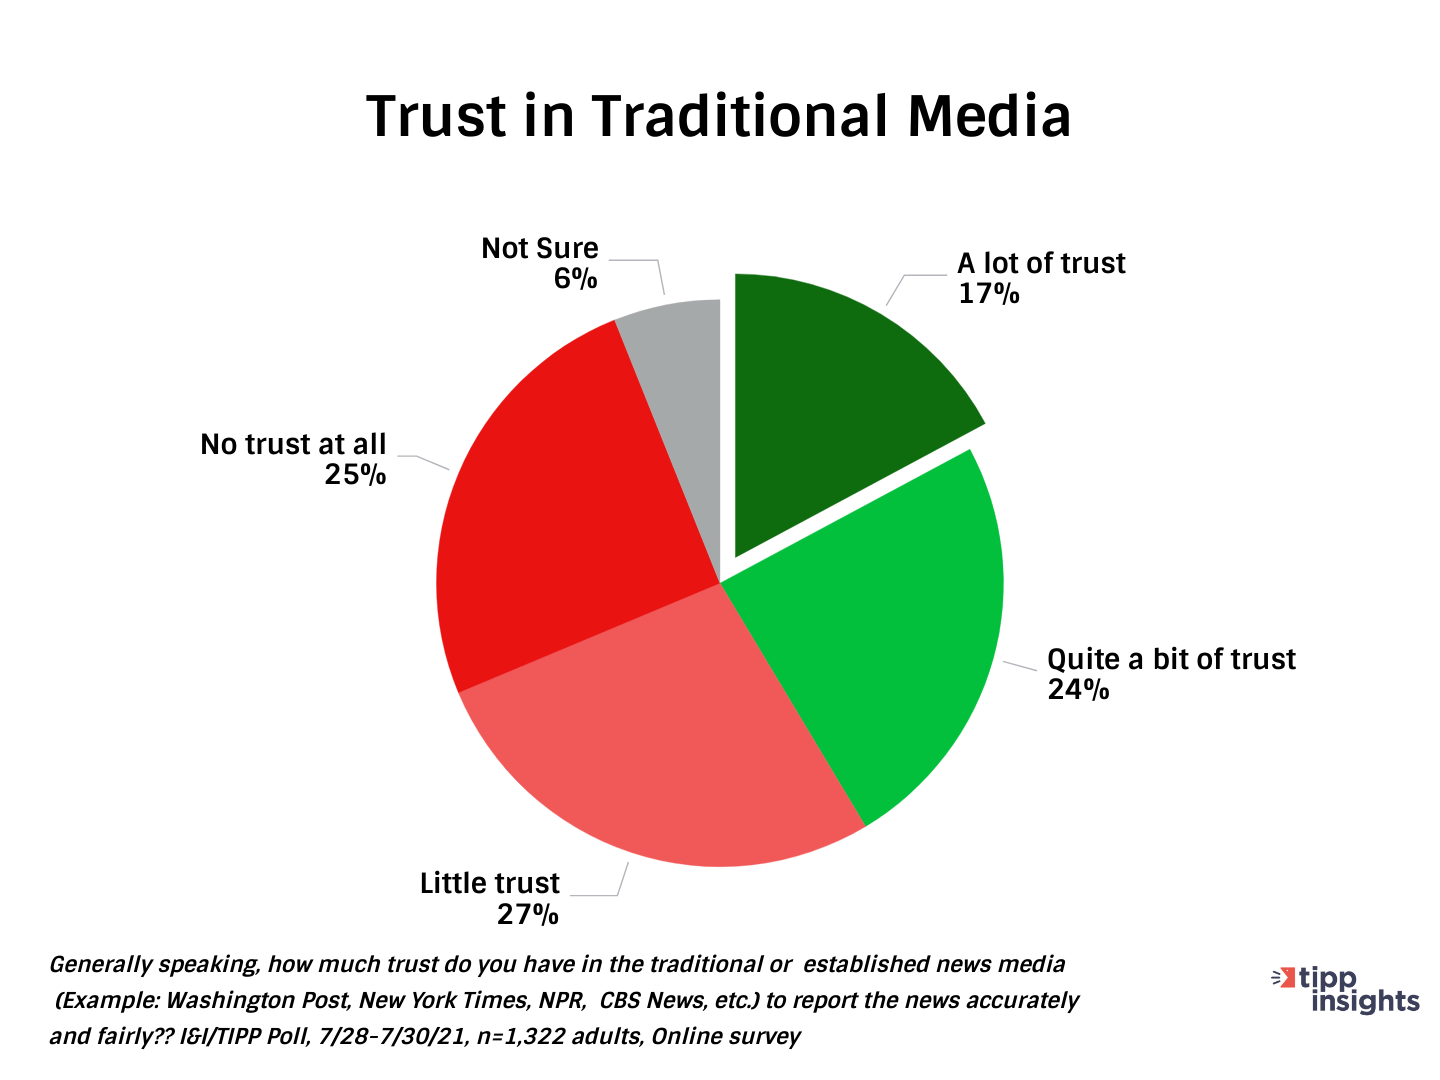 TIPP Poll Results: Americans Trust in Traditional Media